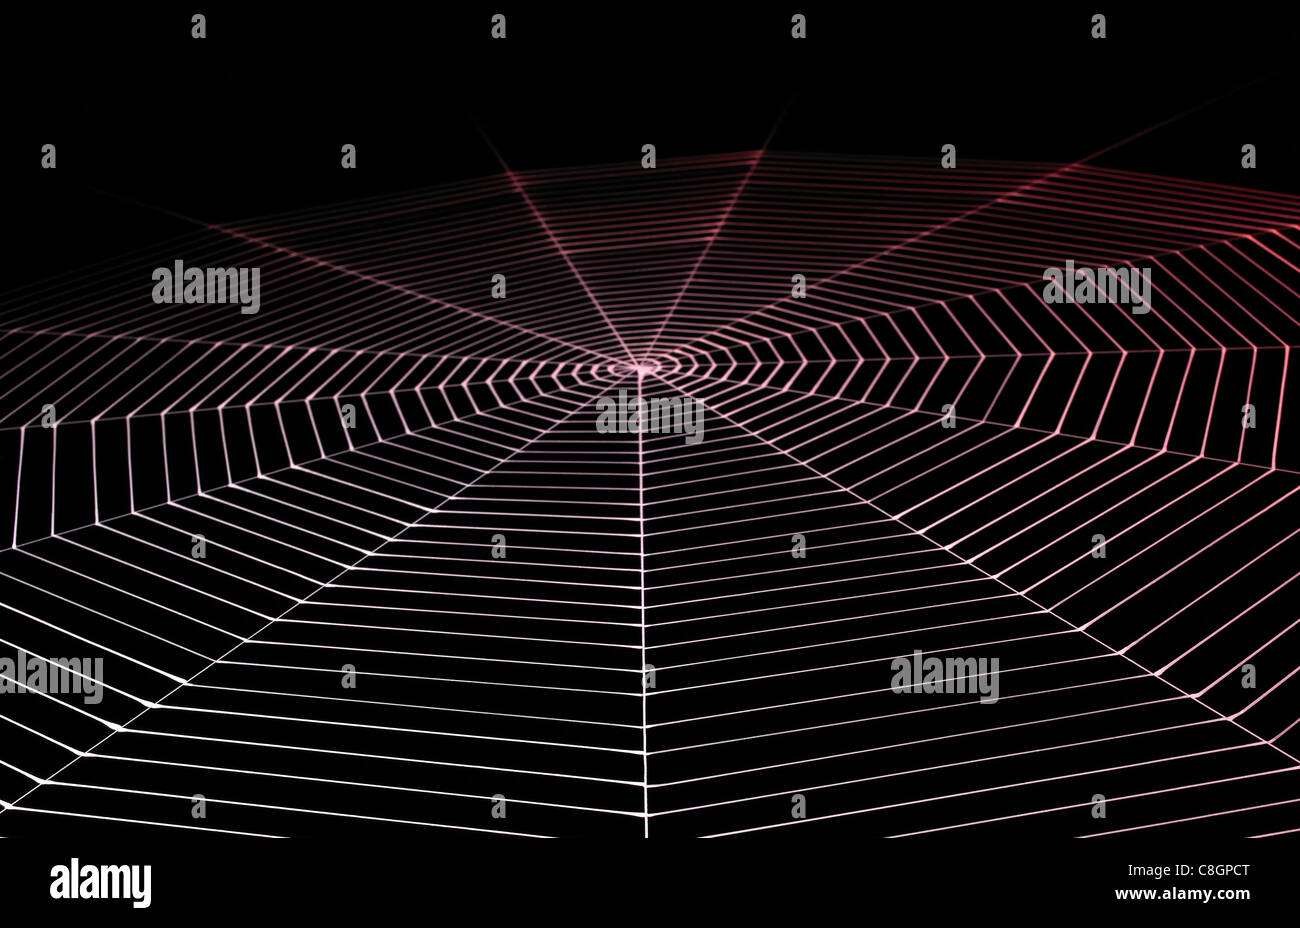 detail of a painted spiral spiderweb in dark back, red illuminated - Stock Image